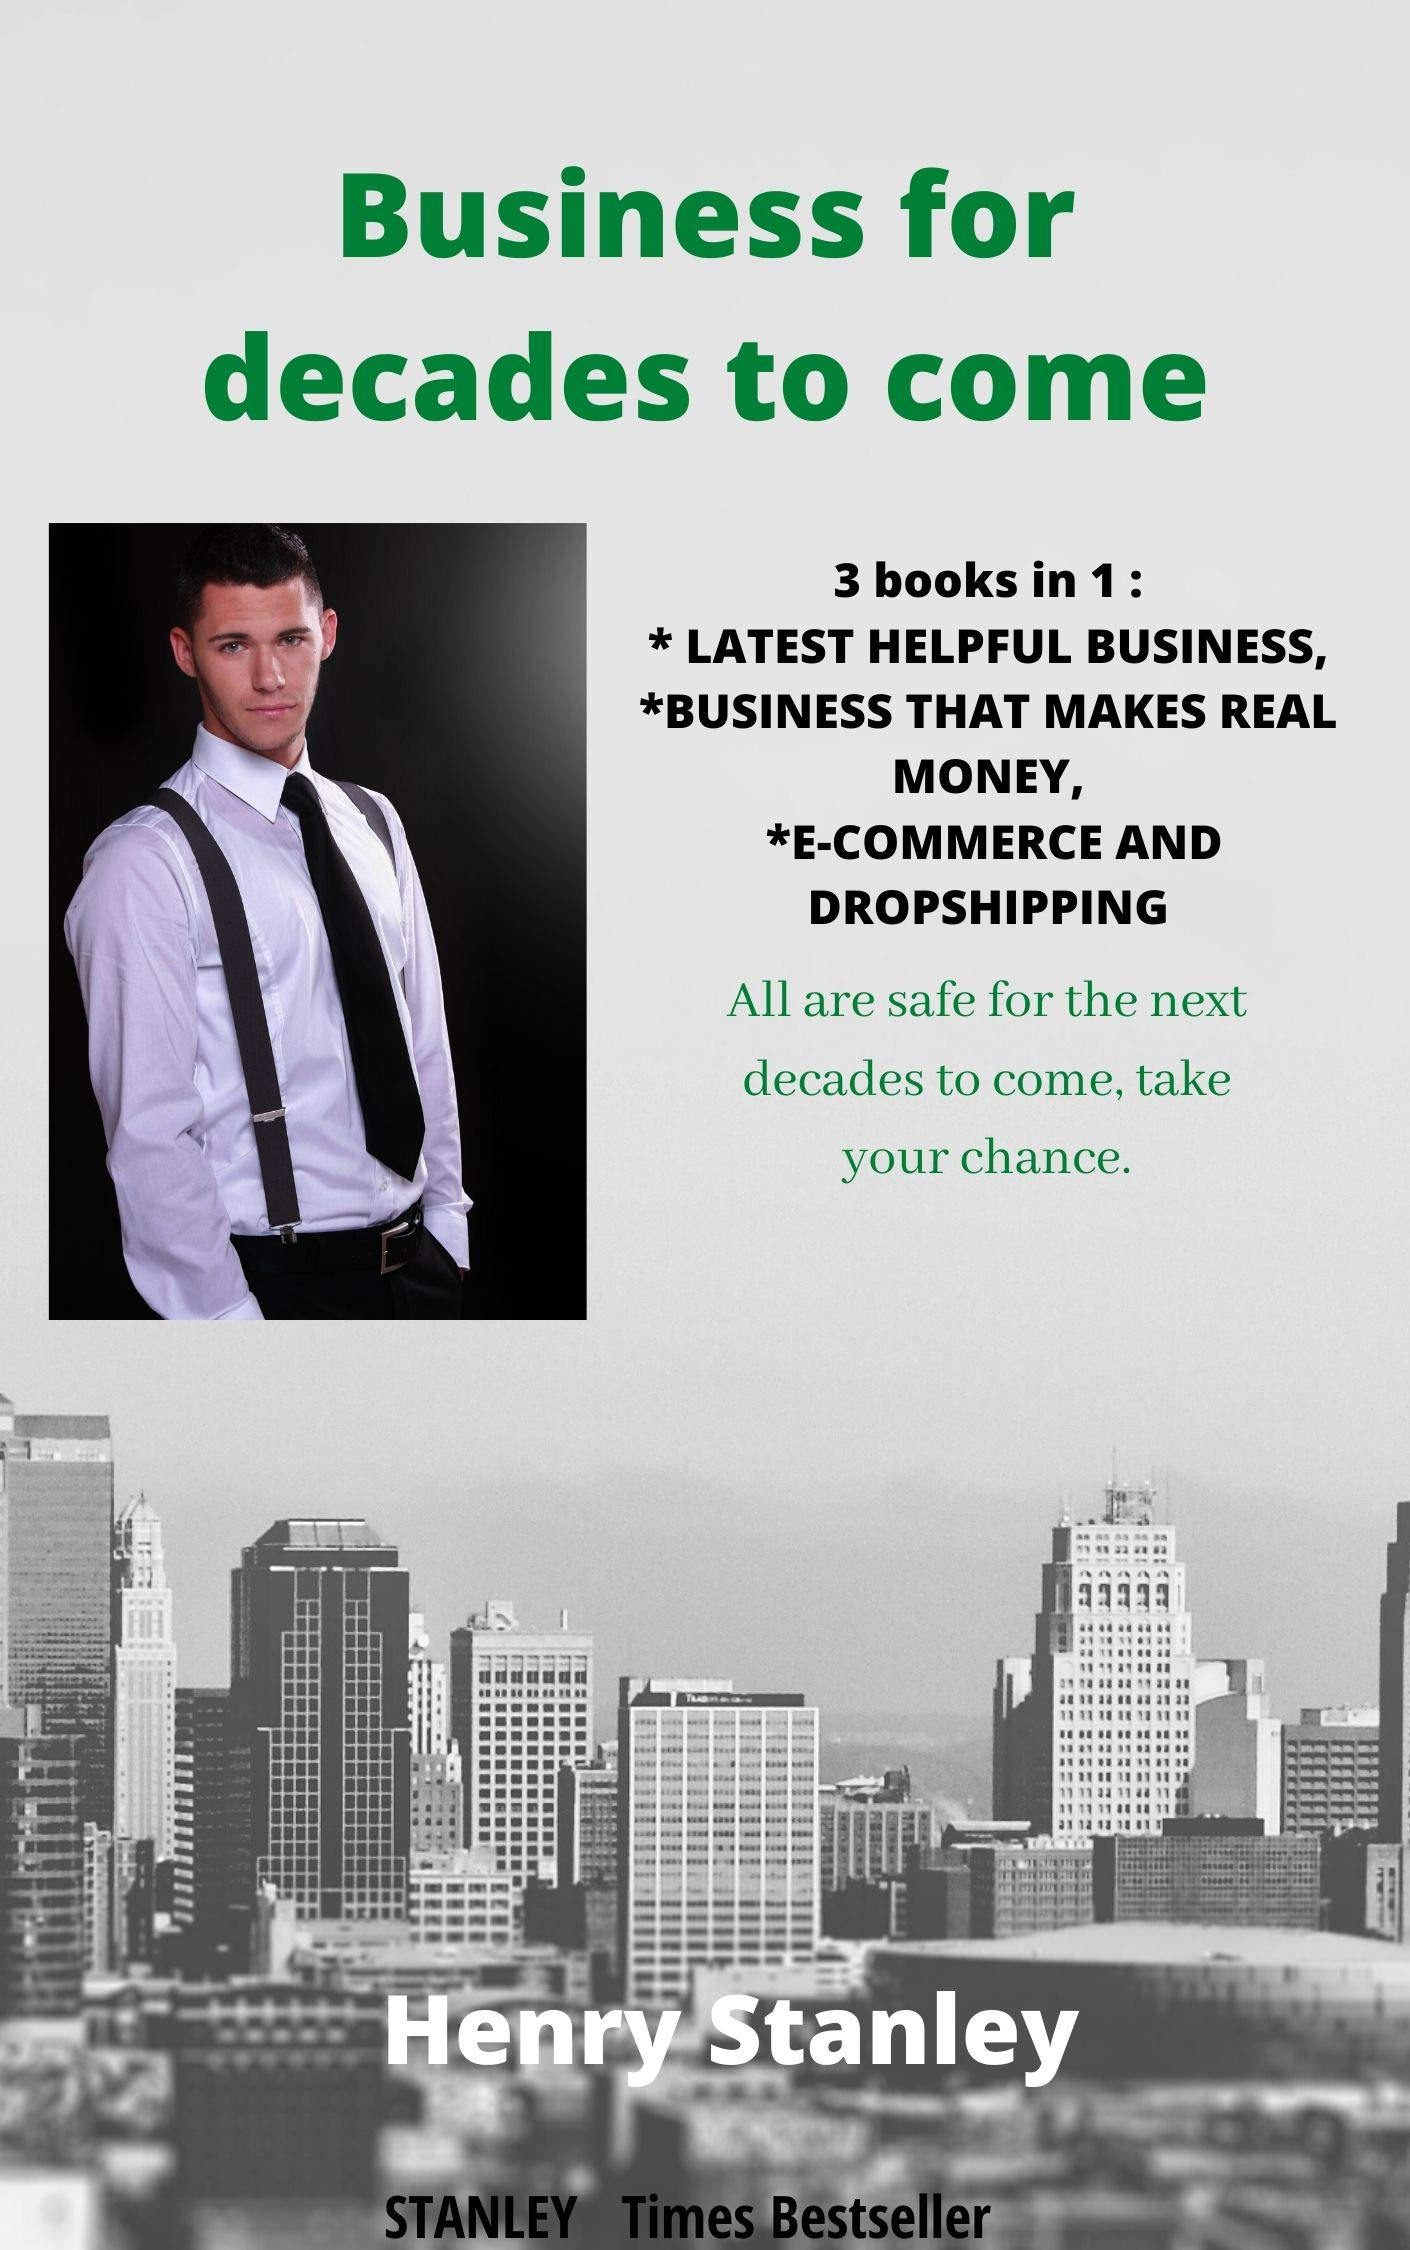 BUSINESS FOR DECADES TO COME: 3  books in 1:  LATEST HELPFUL BUSINESS, BUSINESS THAT MAKES REAL MONEY, E-COMMERCE AND DROPSHIPPING All Safe For The Decades To Come, Take Your Chance